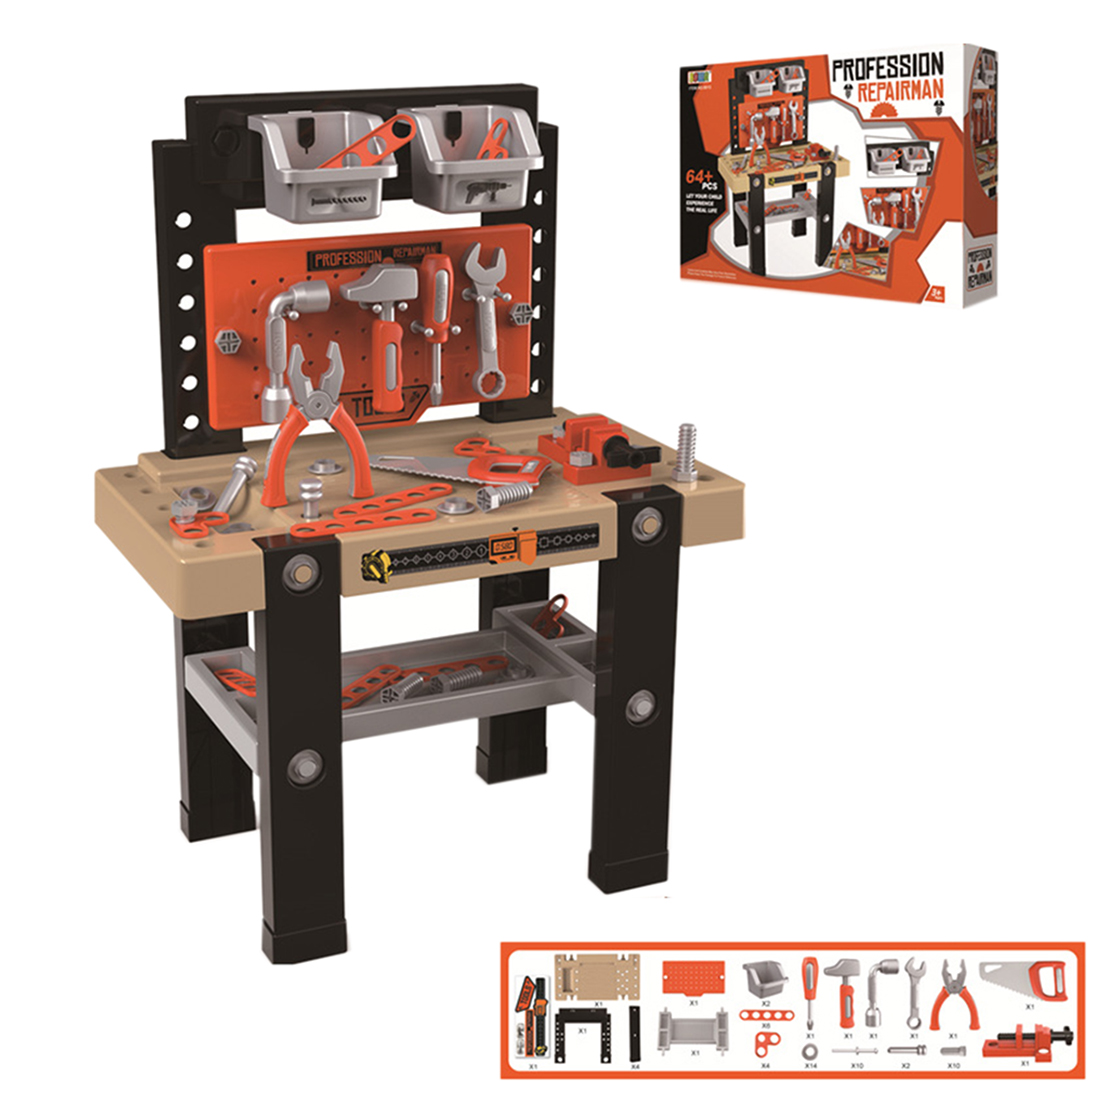 64Pcs Children Pretend Repair Tool Workbench Playset Assembly Educational Toy Learning Skills Set Gift For Boys Over 3 Years Old